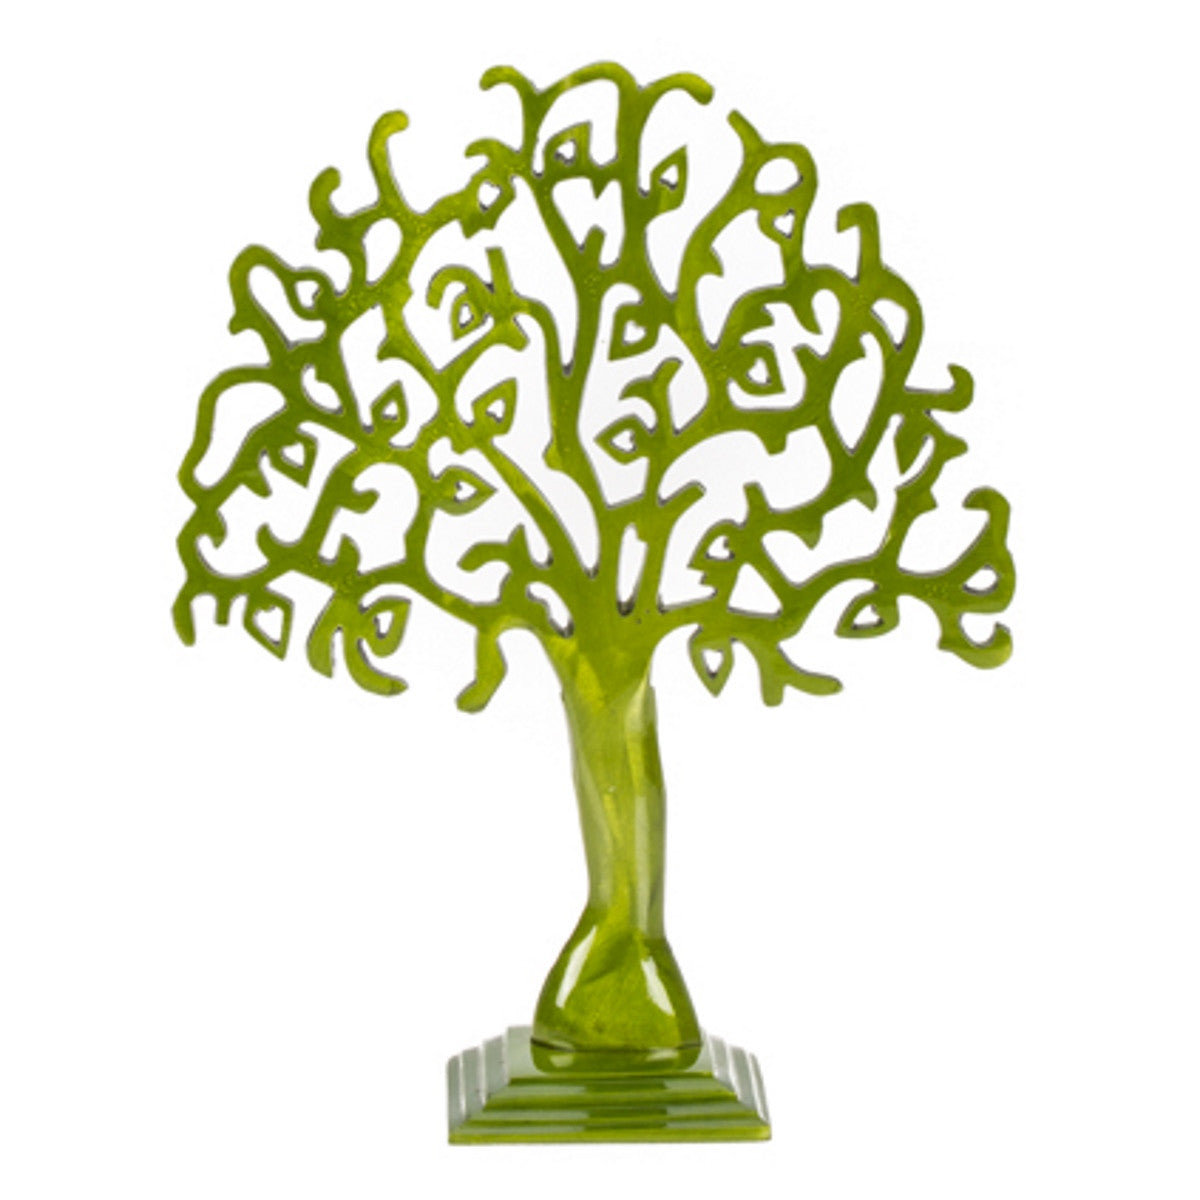 Casa Uno Aluminium Heart Branch Jewellery Tree, Small, 36cm